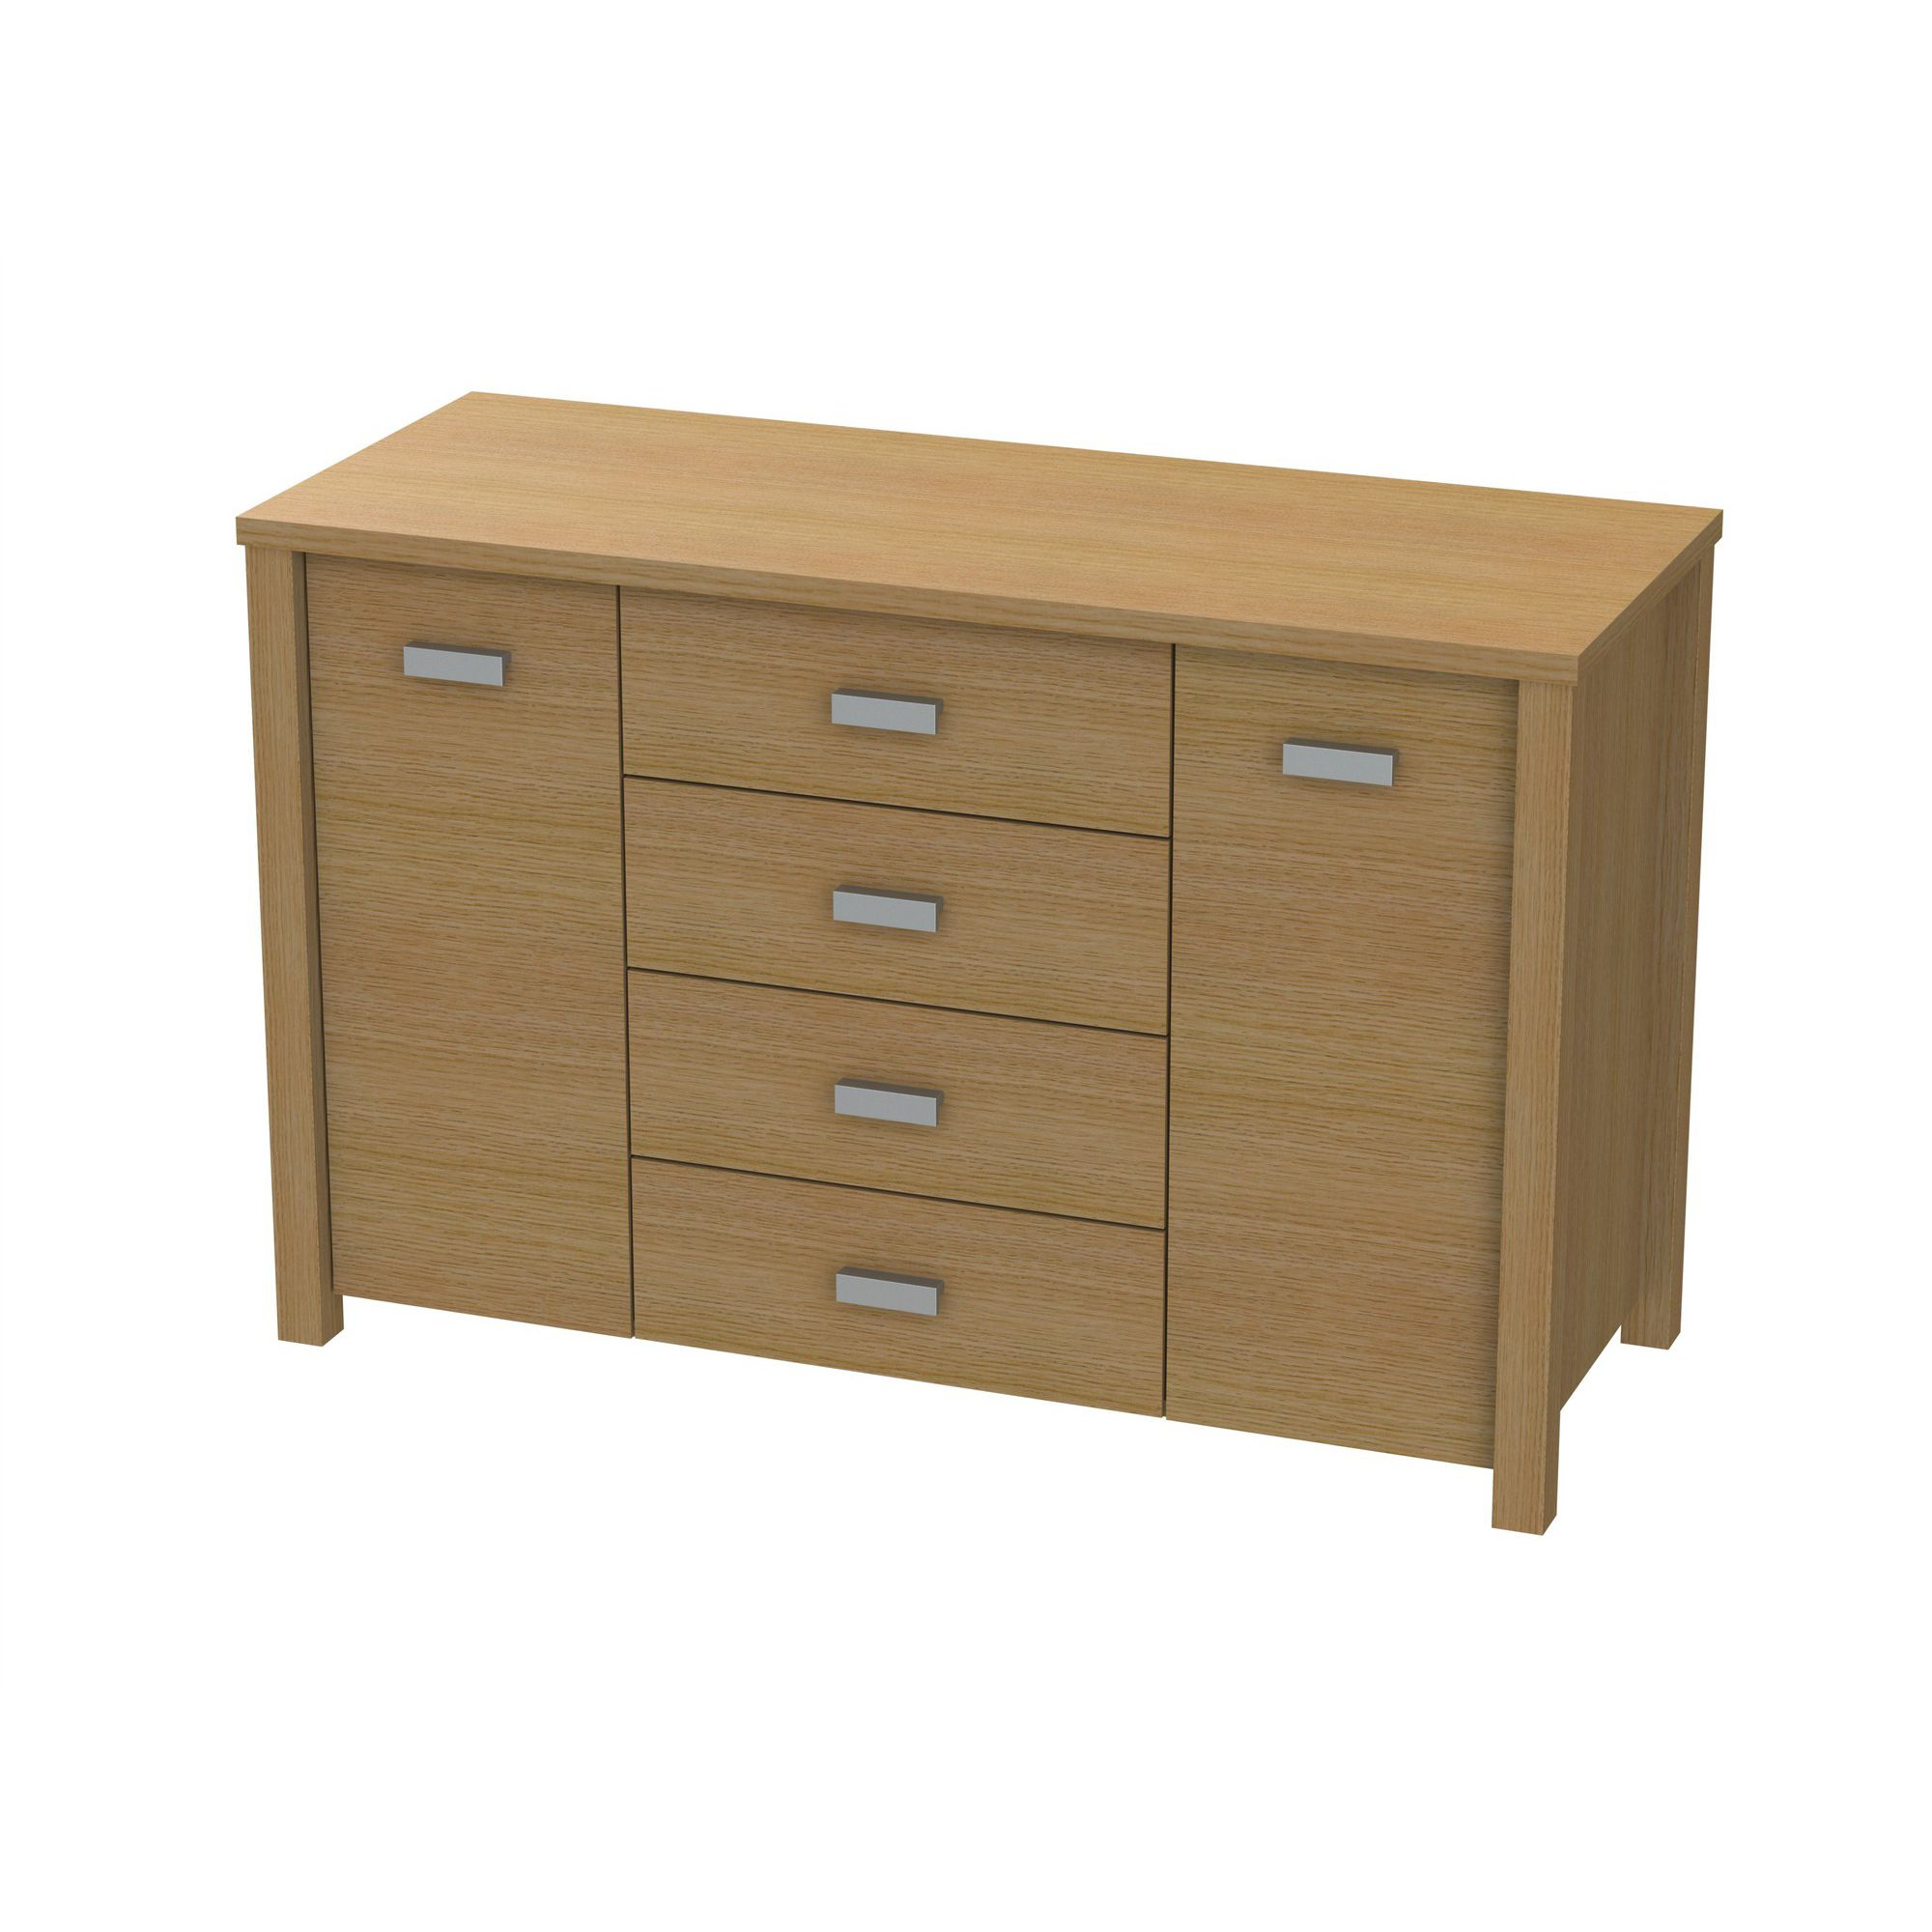 Ashcraft Romsey Sideboard - Walnut at Tesco Direct